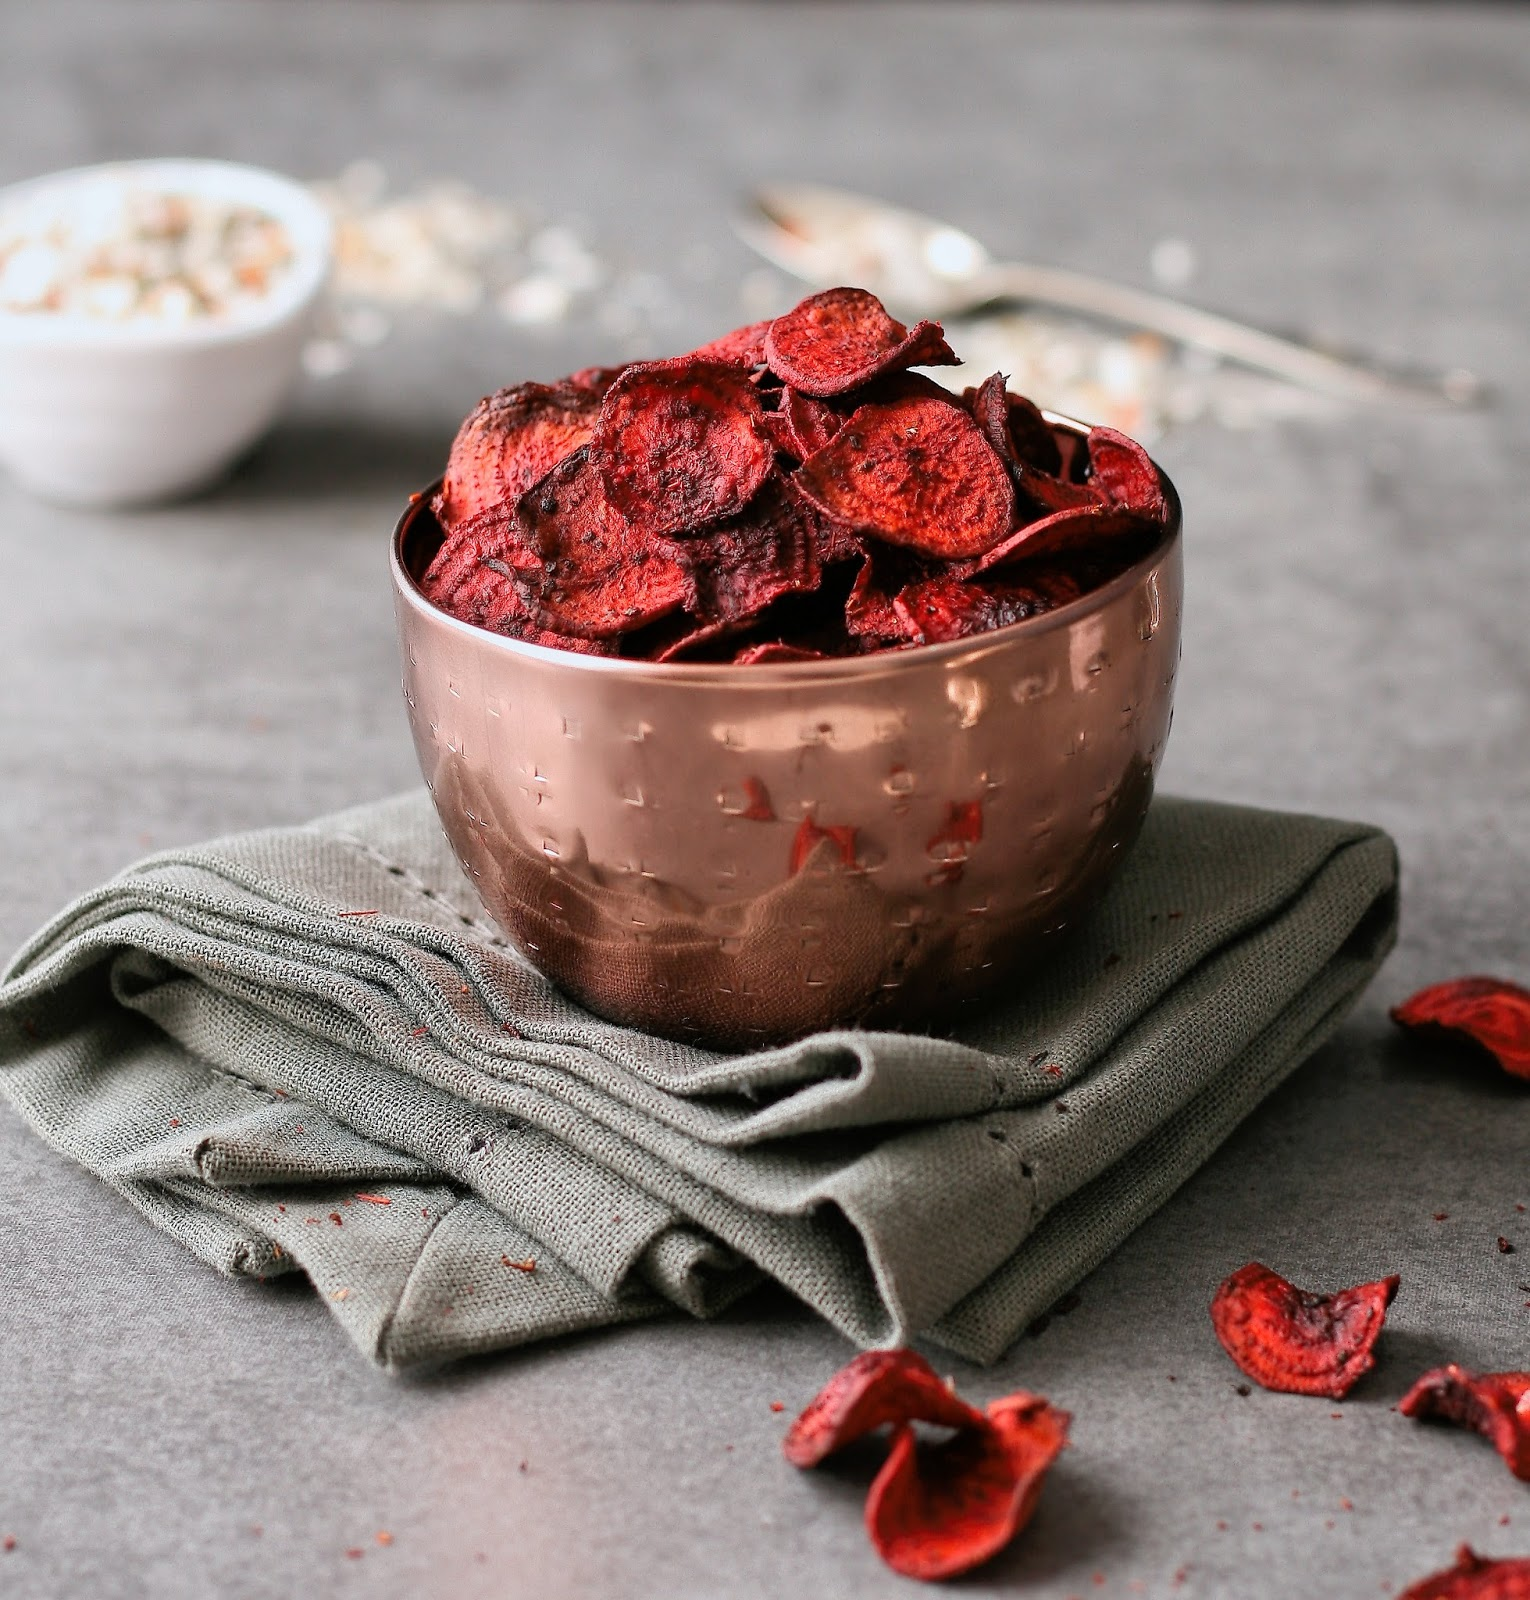 Beetroot crisps in a bowl.